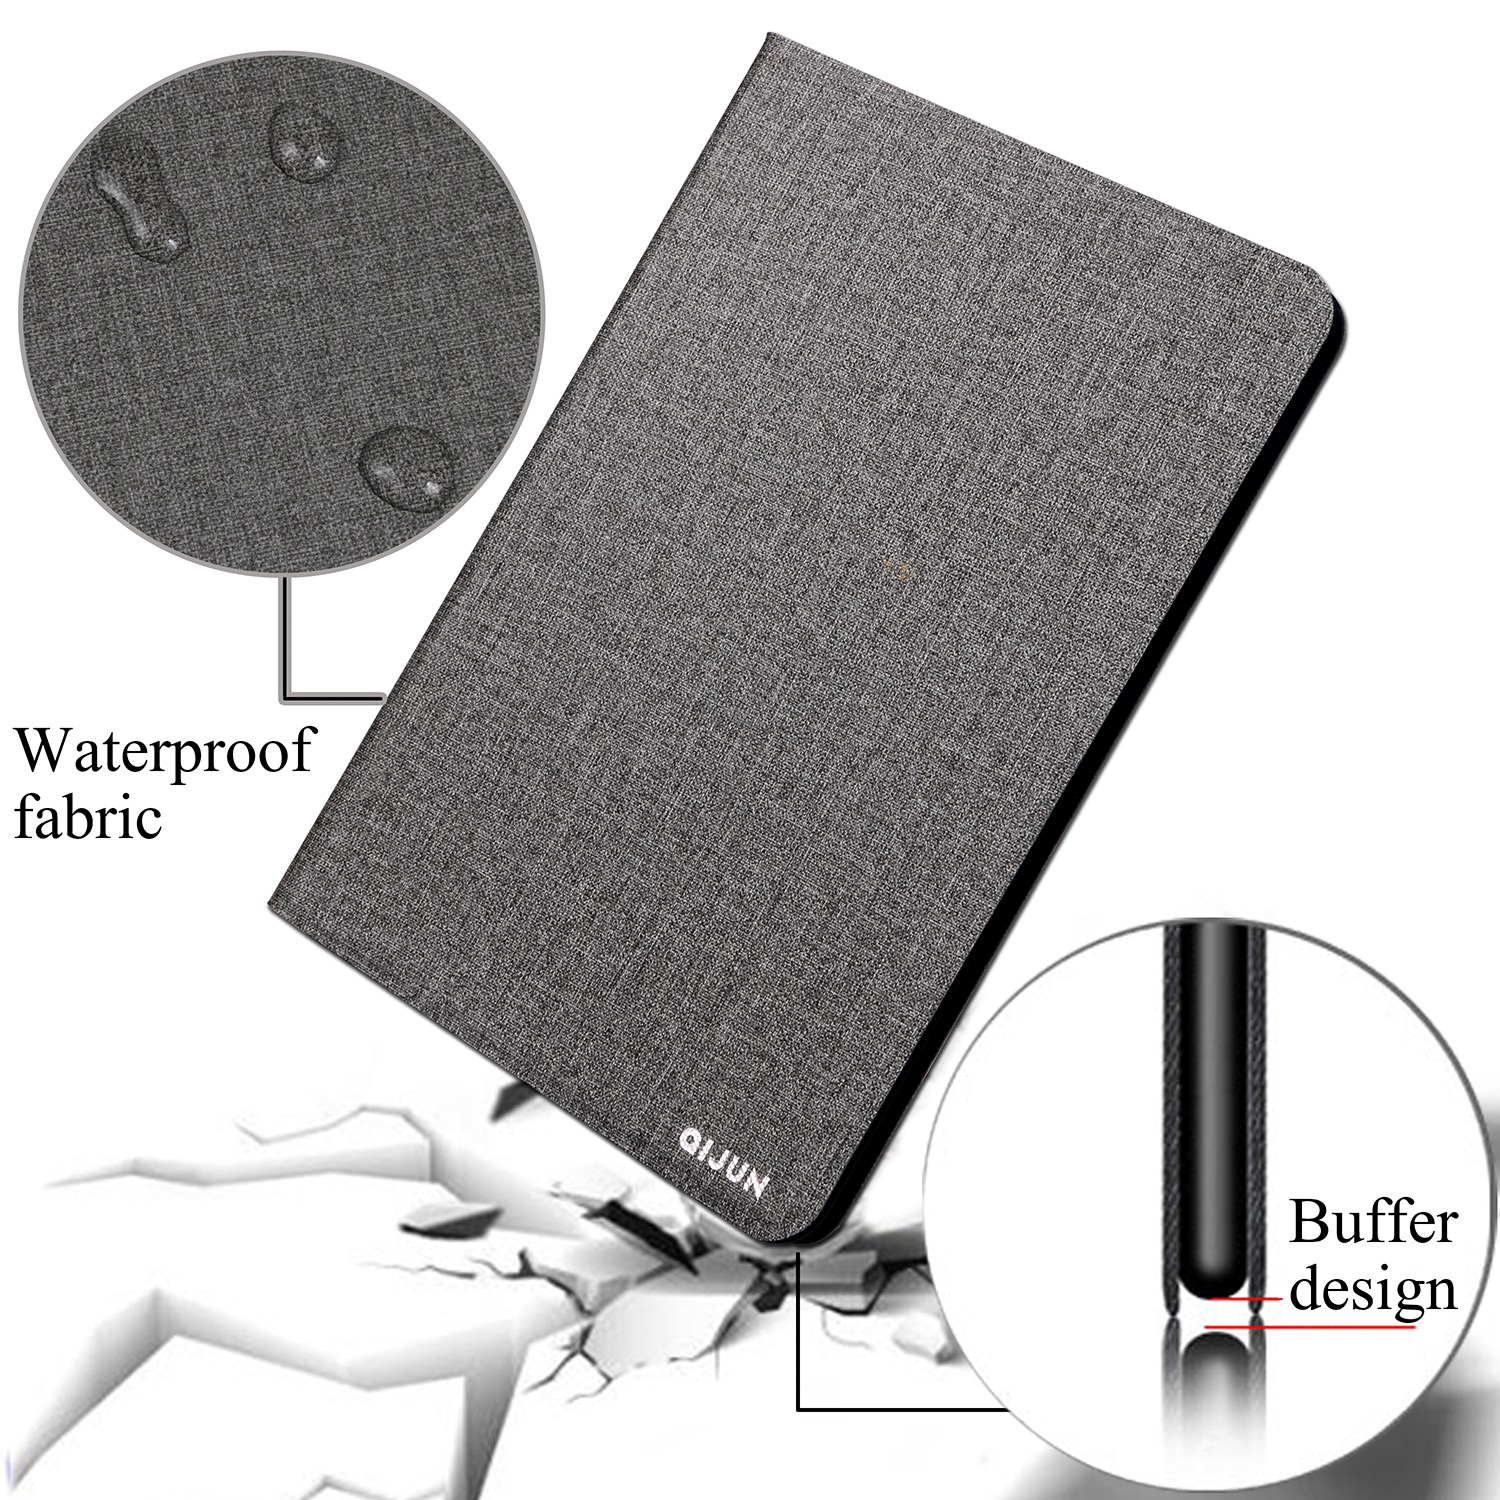 QIJUN tablet flip case for Huawei MediaPad T5 10 10 1 quot leather Stand Cover Silicone soft shell fundas for AGS2 W09 W19 L03 L09 in Tablets amp e Books Case from Computer amp Office